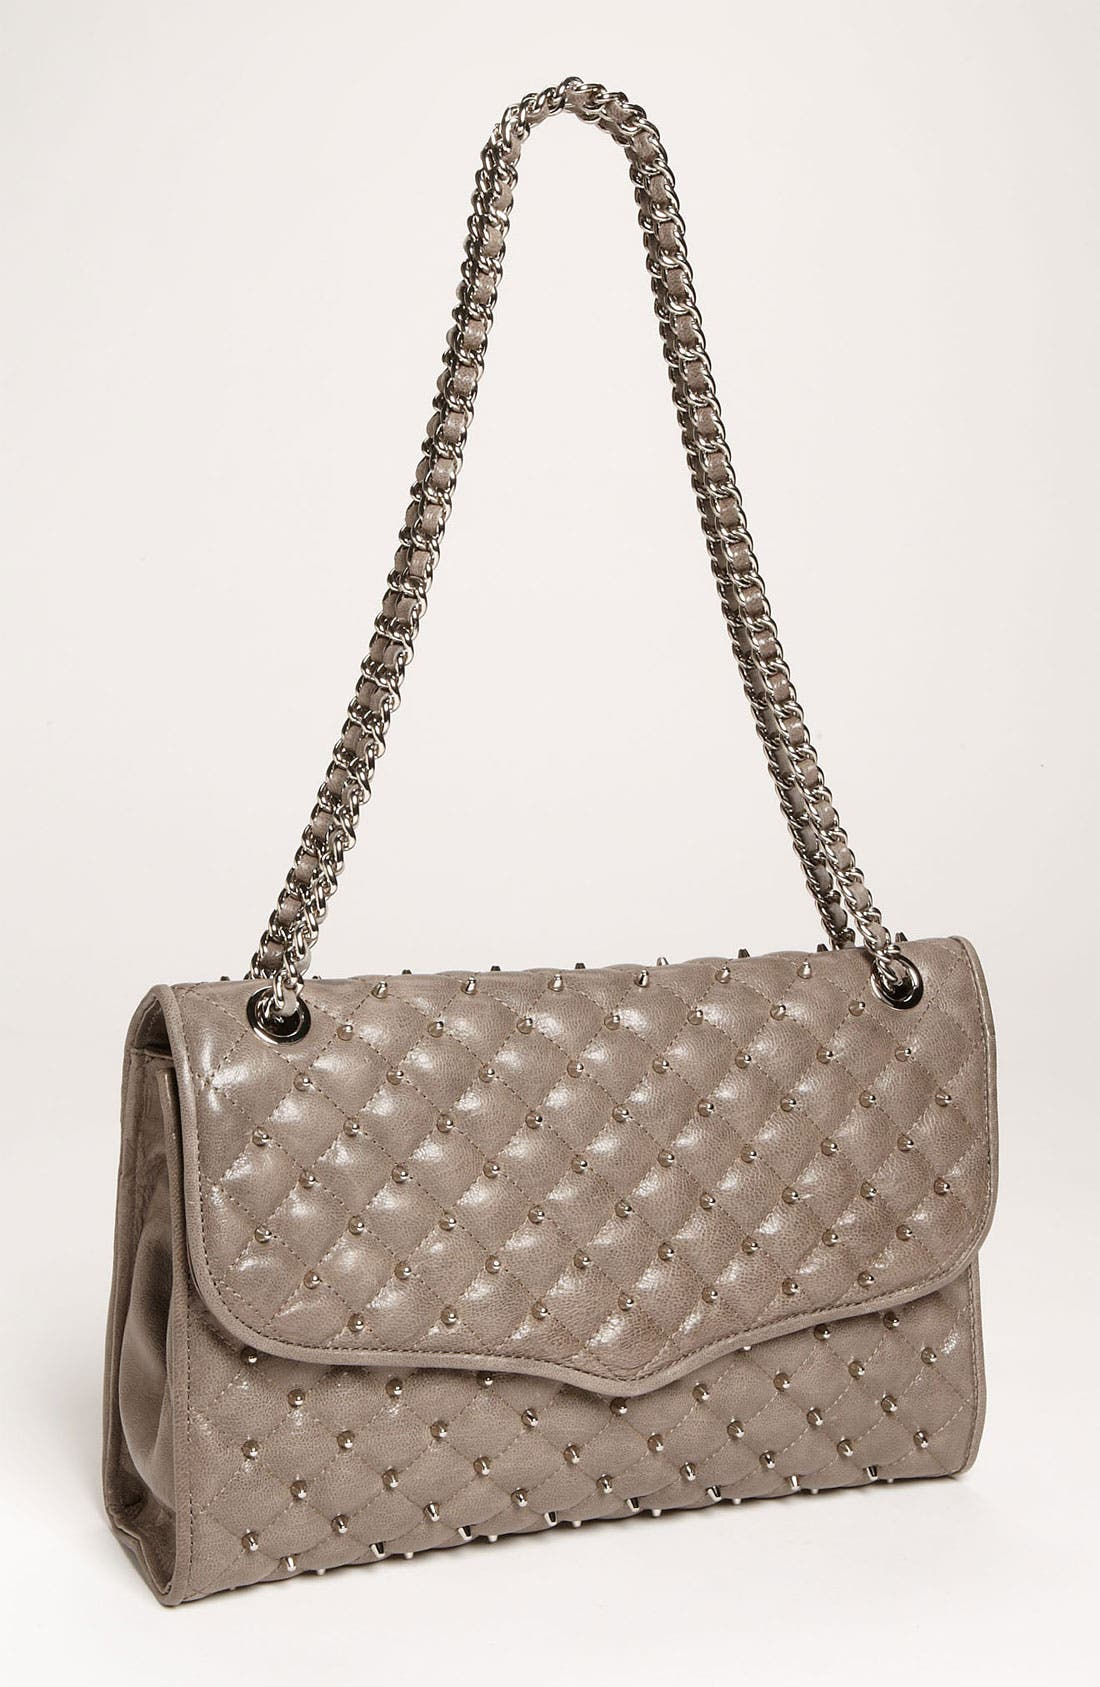 Main Image - Rebecca Minkoff 'Affair - Large' Double Chain Shoulder Bag